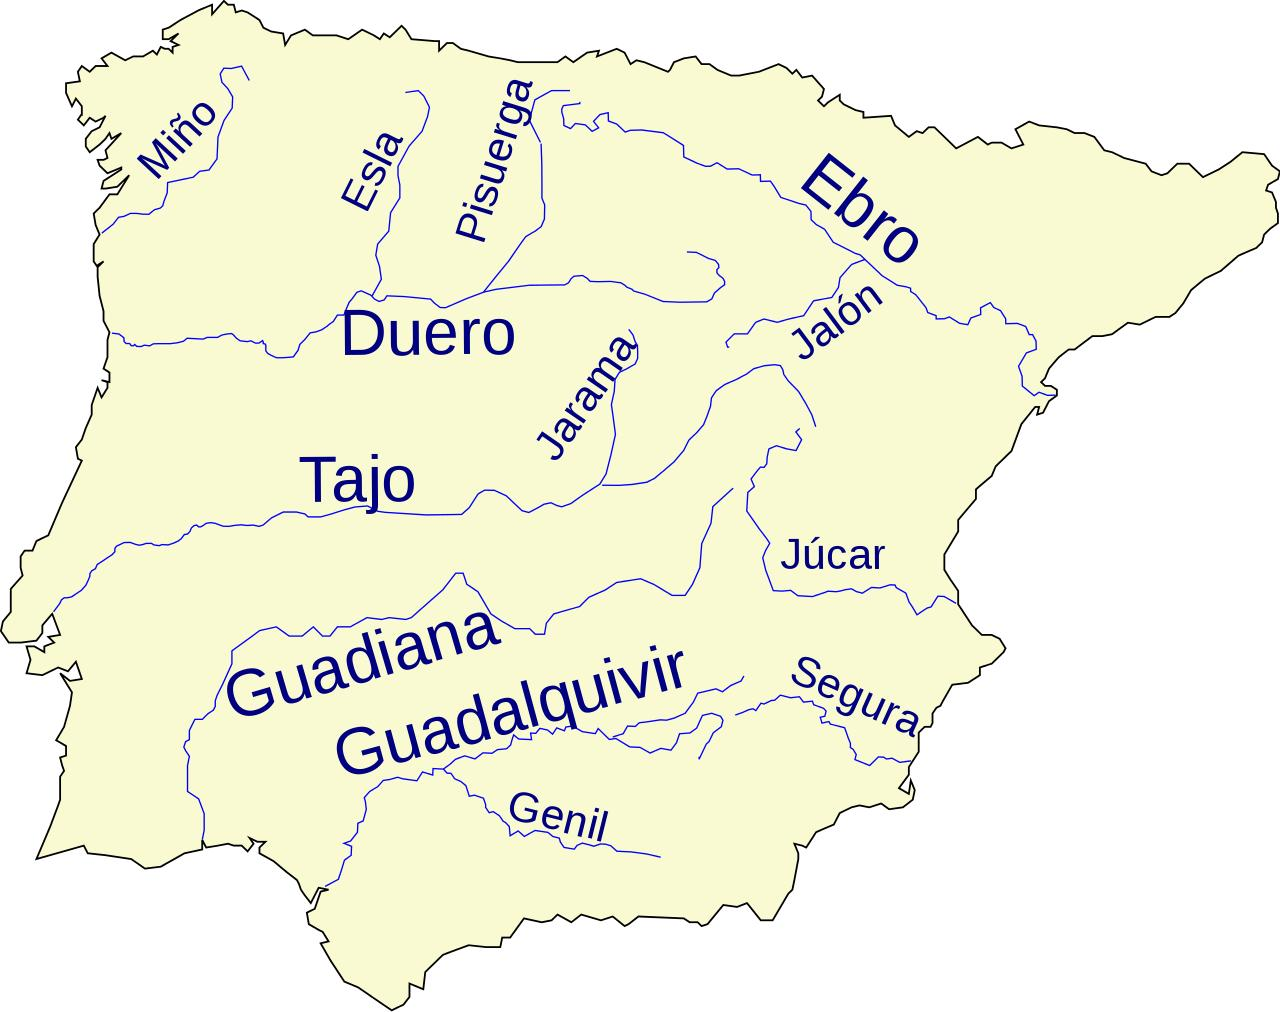 Map Of Spain Rivers.Rivers In Spain Map Spain River Map Southern Europe Europe